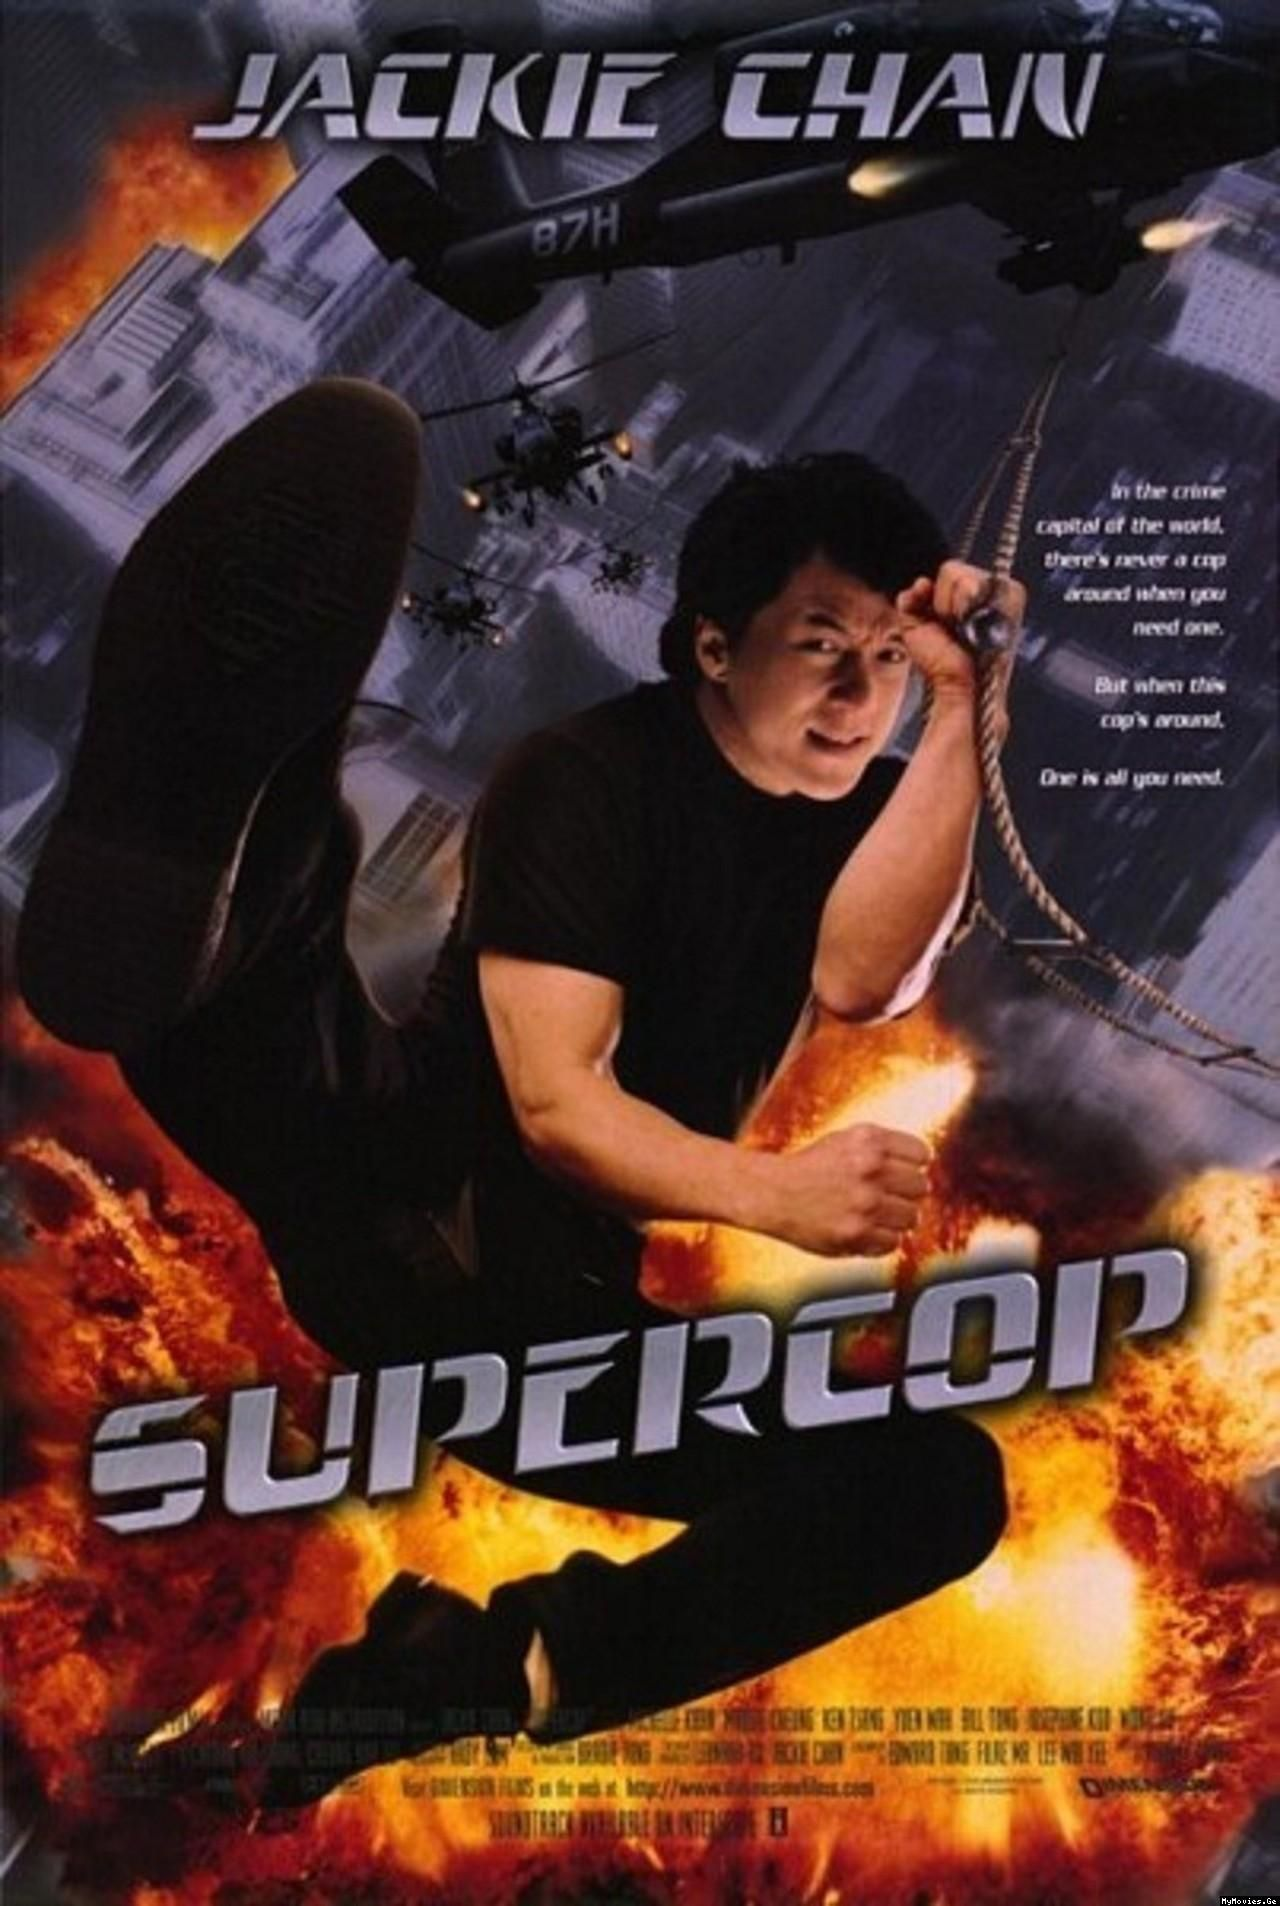 Top Ten Best Japanese Live Action Anime And Manga Films With Images Jackie Chan Movies Jackie Chan Movie Co